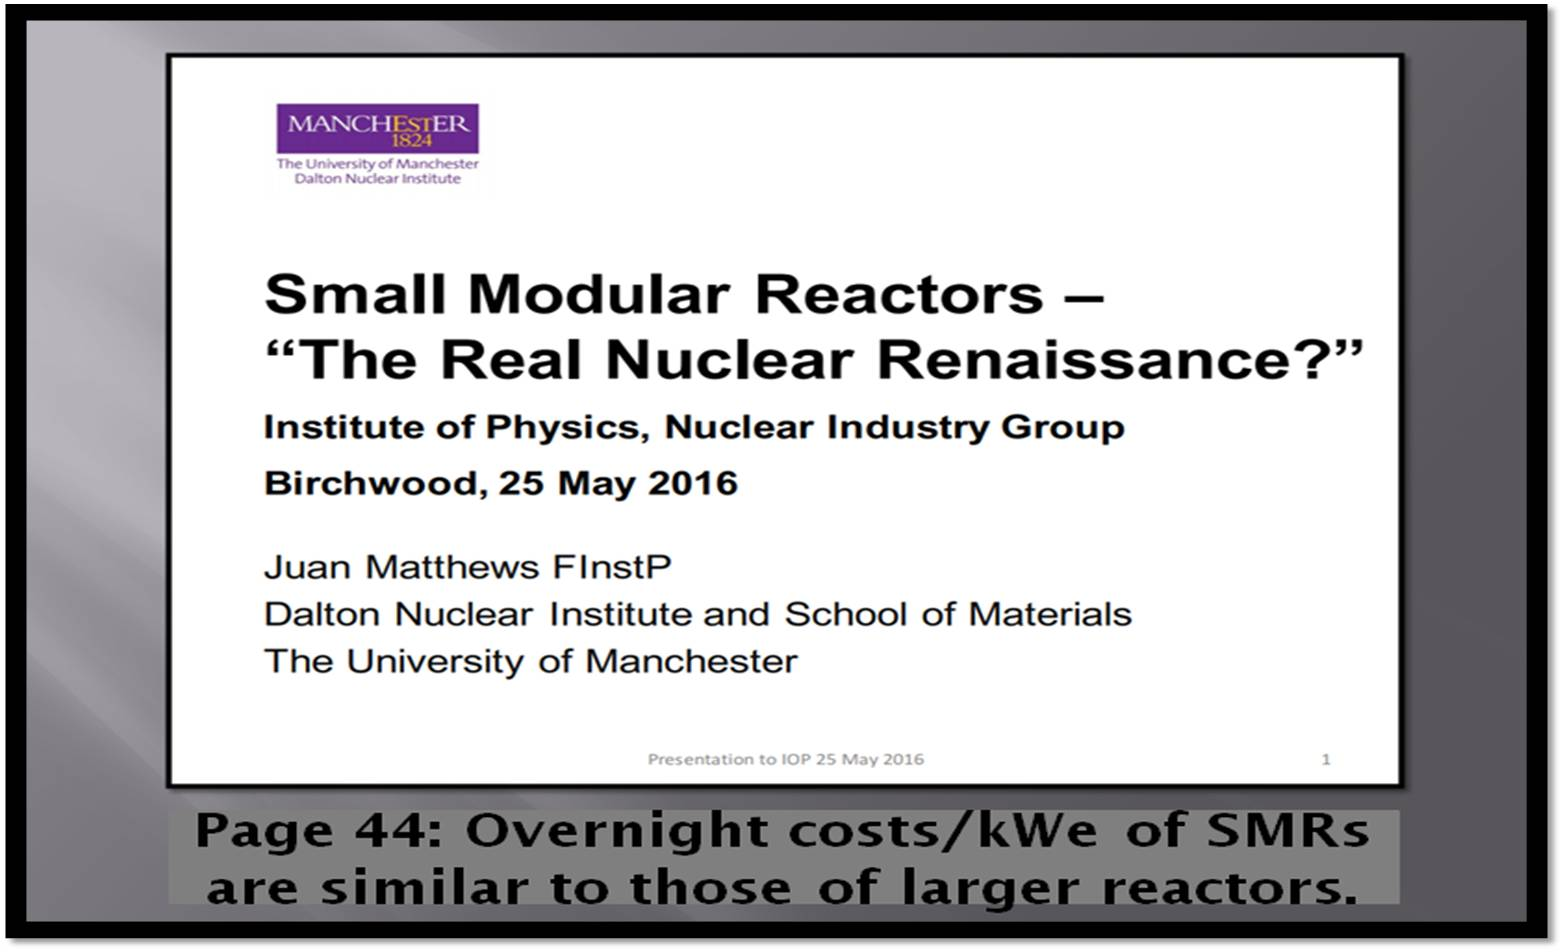 Modular Construction Costs construction cost of a single 220 mw small modular reactor is just